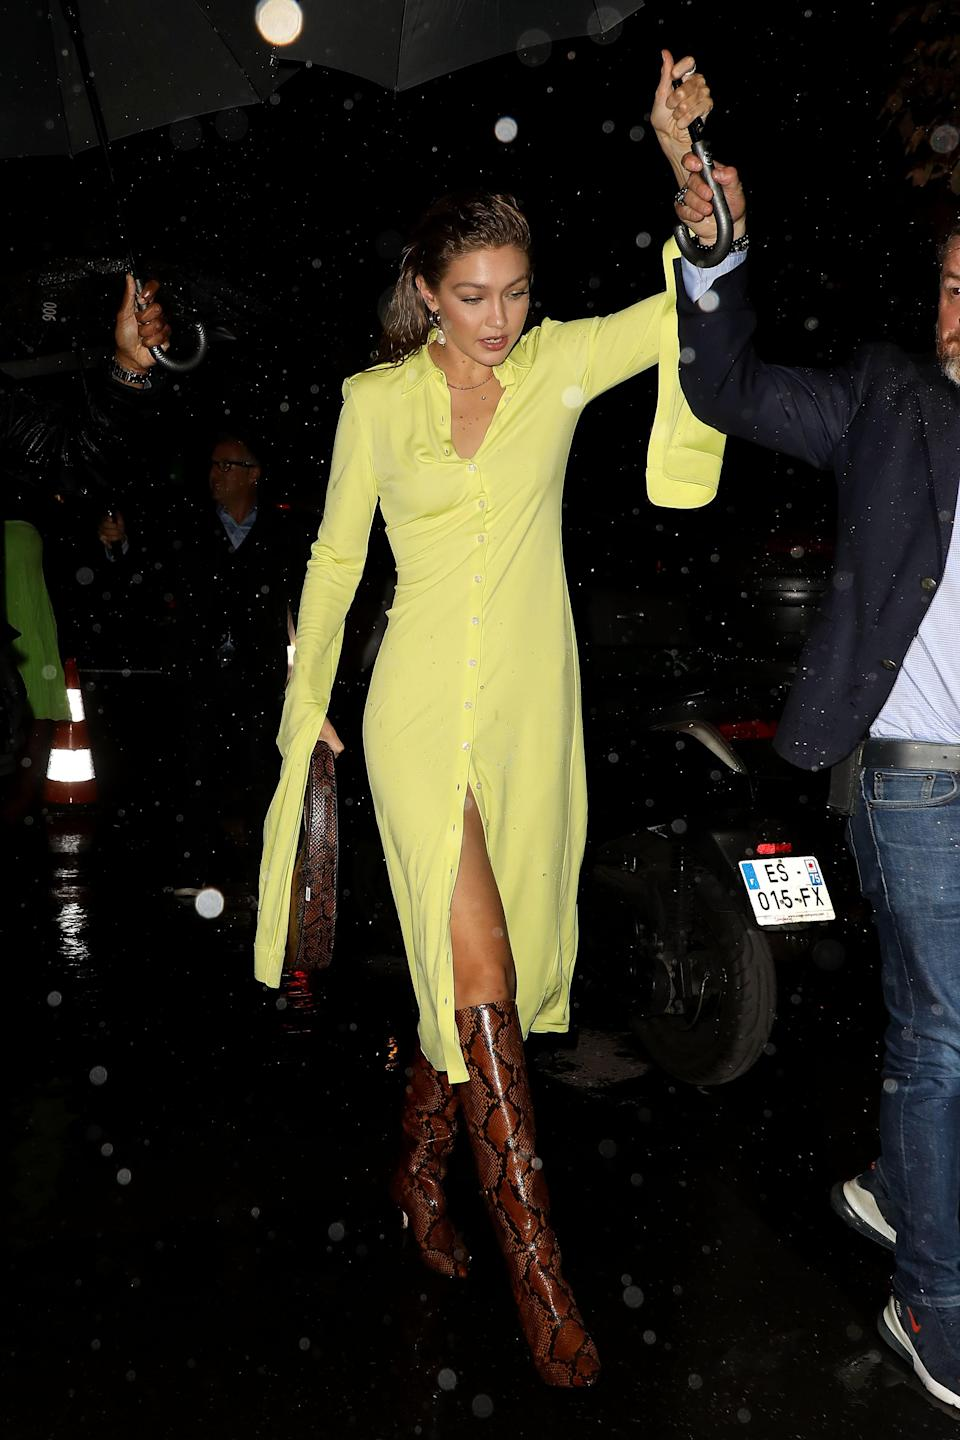 Attending the Fenty after party in Paris and little rain isn't going to keep Gigi from hitting the hottest party in Paris! Her love for exaggerated sleeves truly knows no bounds in this banana-yellow button-down midi dress. The unexpected pairing of a snakeskin handbag and matching boots kicks this look up from sweet to party-ready glam.